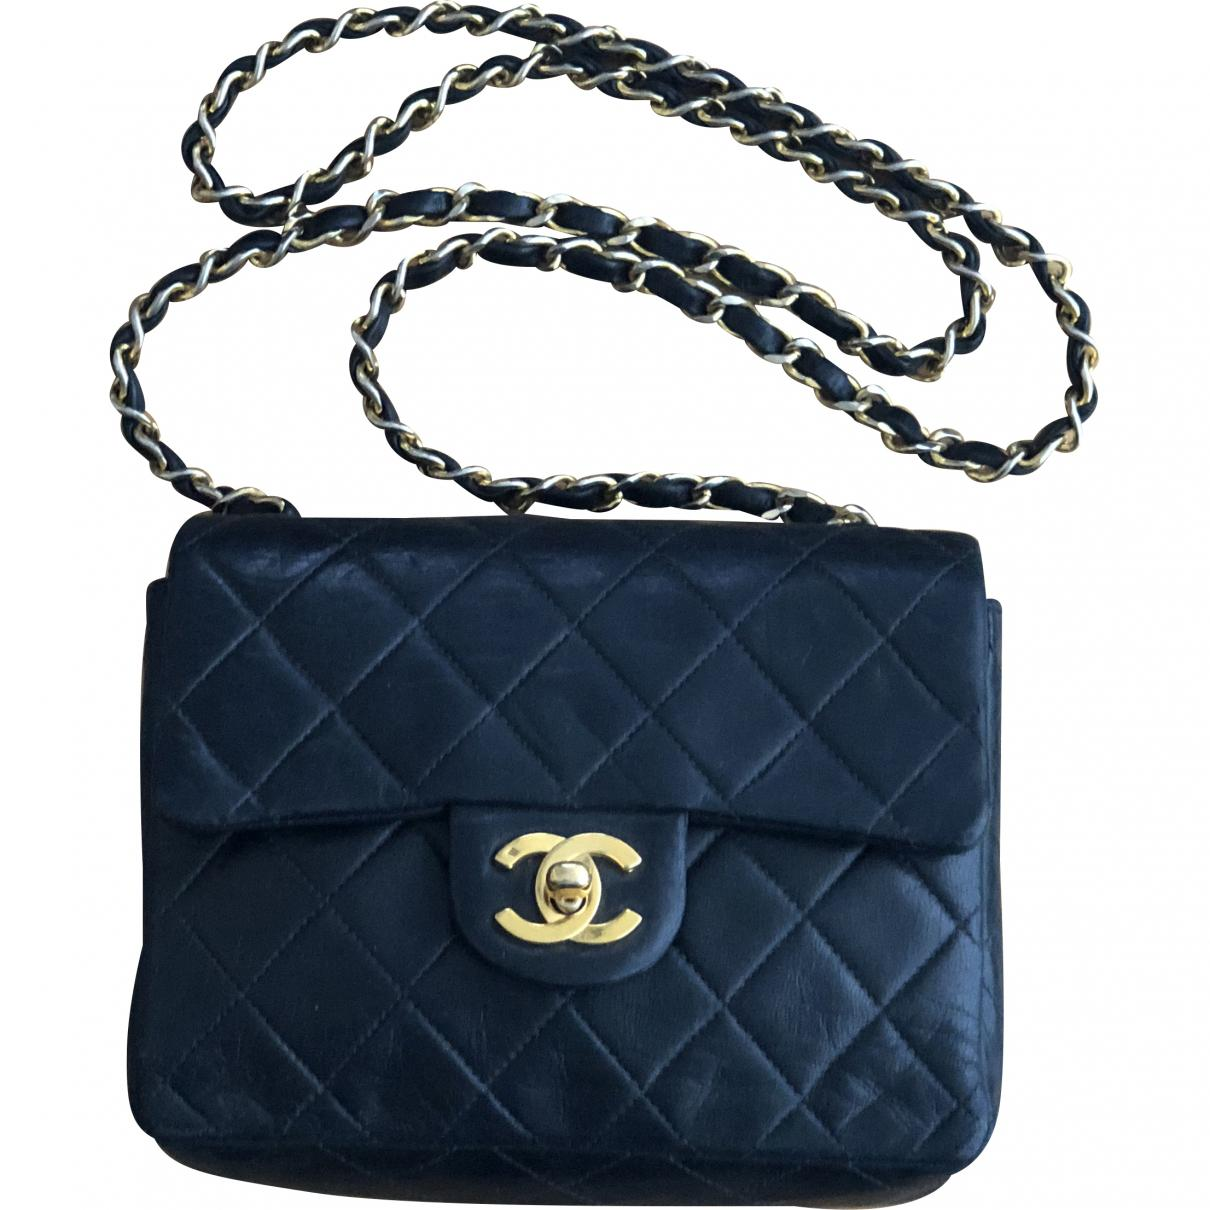 Lyst - Chanel Timeless Leather Clutch Bag in Black 9dbf4313262a7